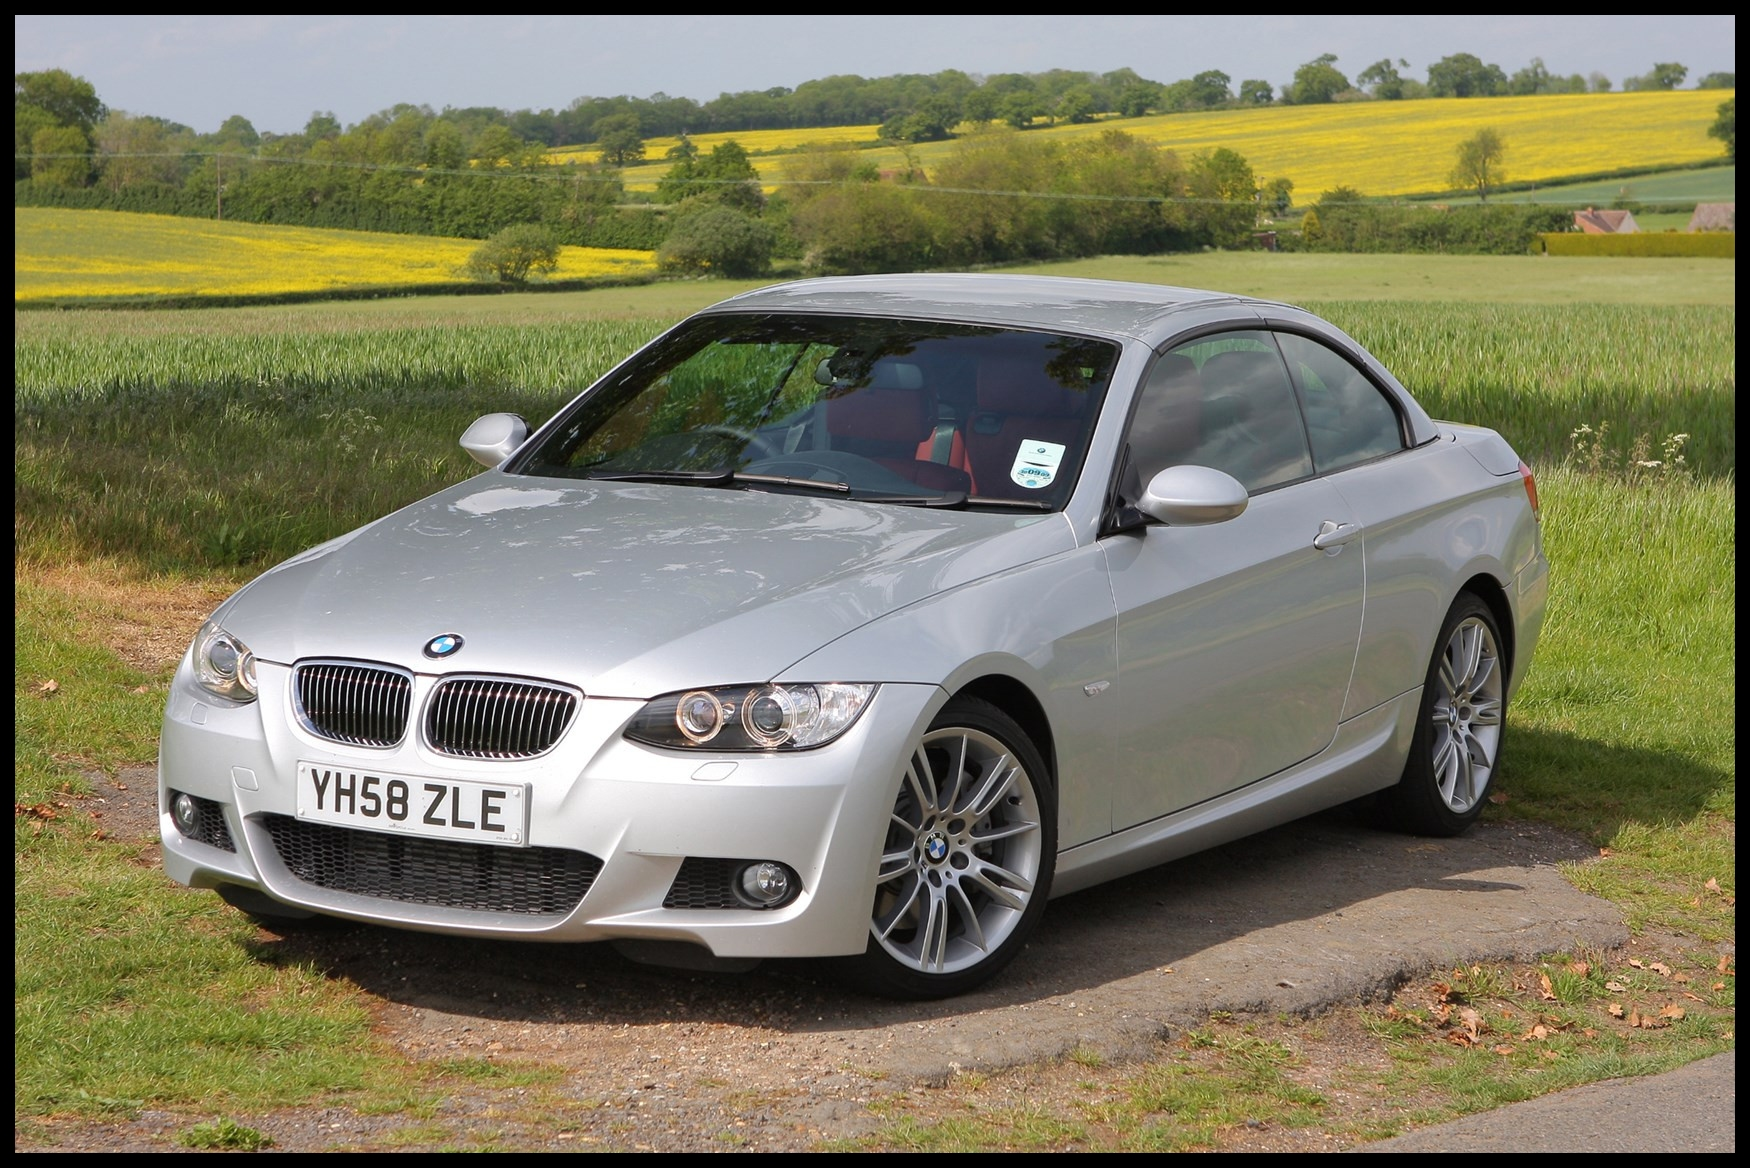 Bmw 3 Series Coupe 2006 for Sale Lovely Bmw 3 Series Convertible Review 2007 2013